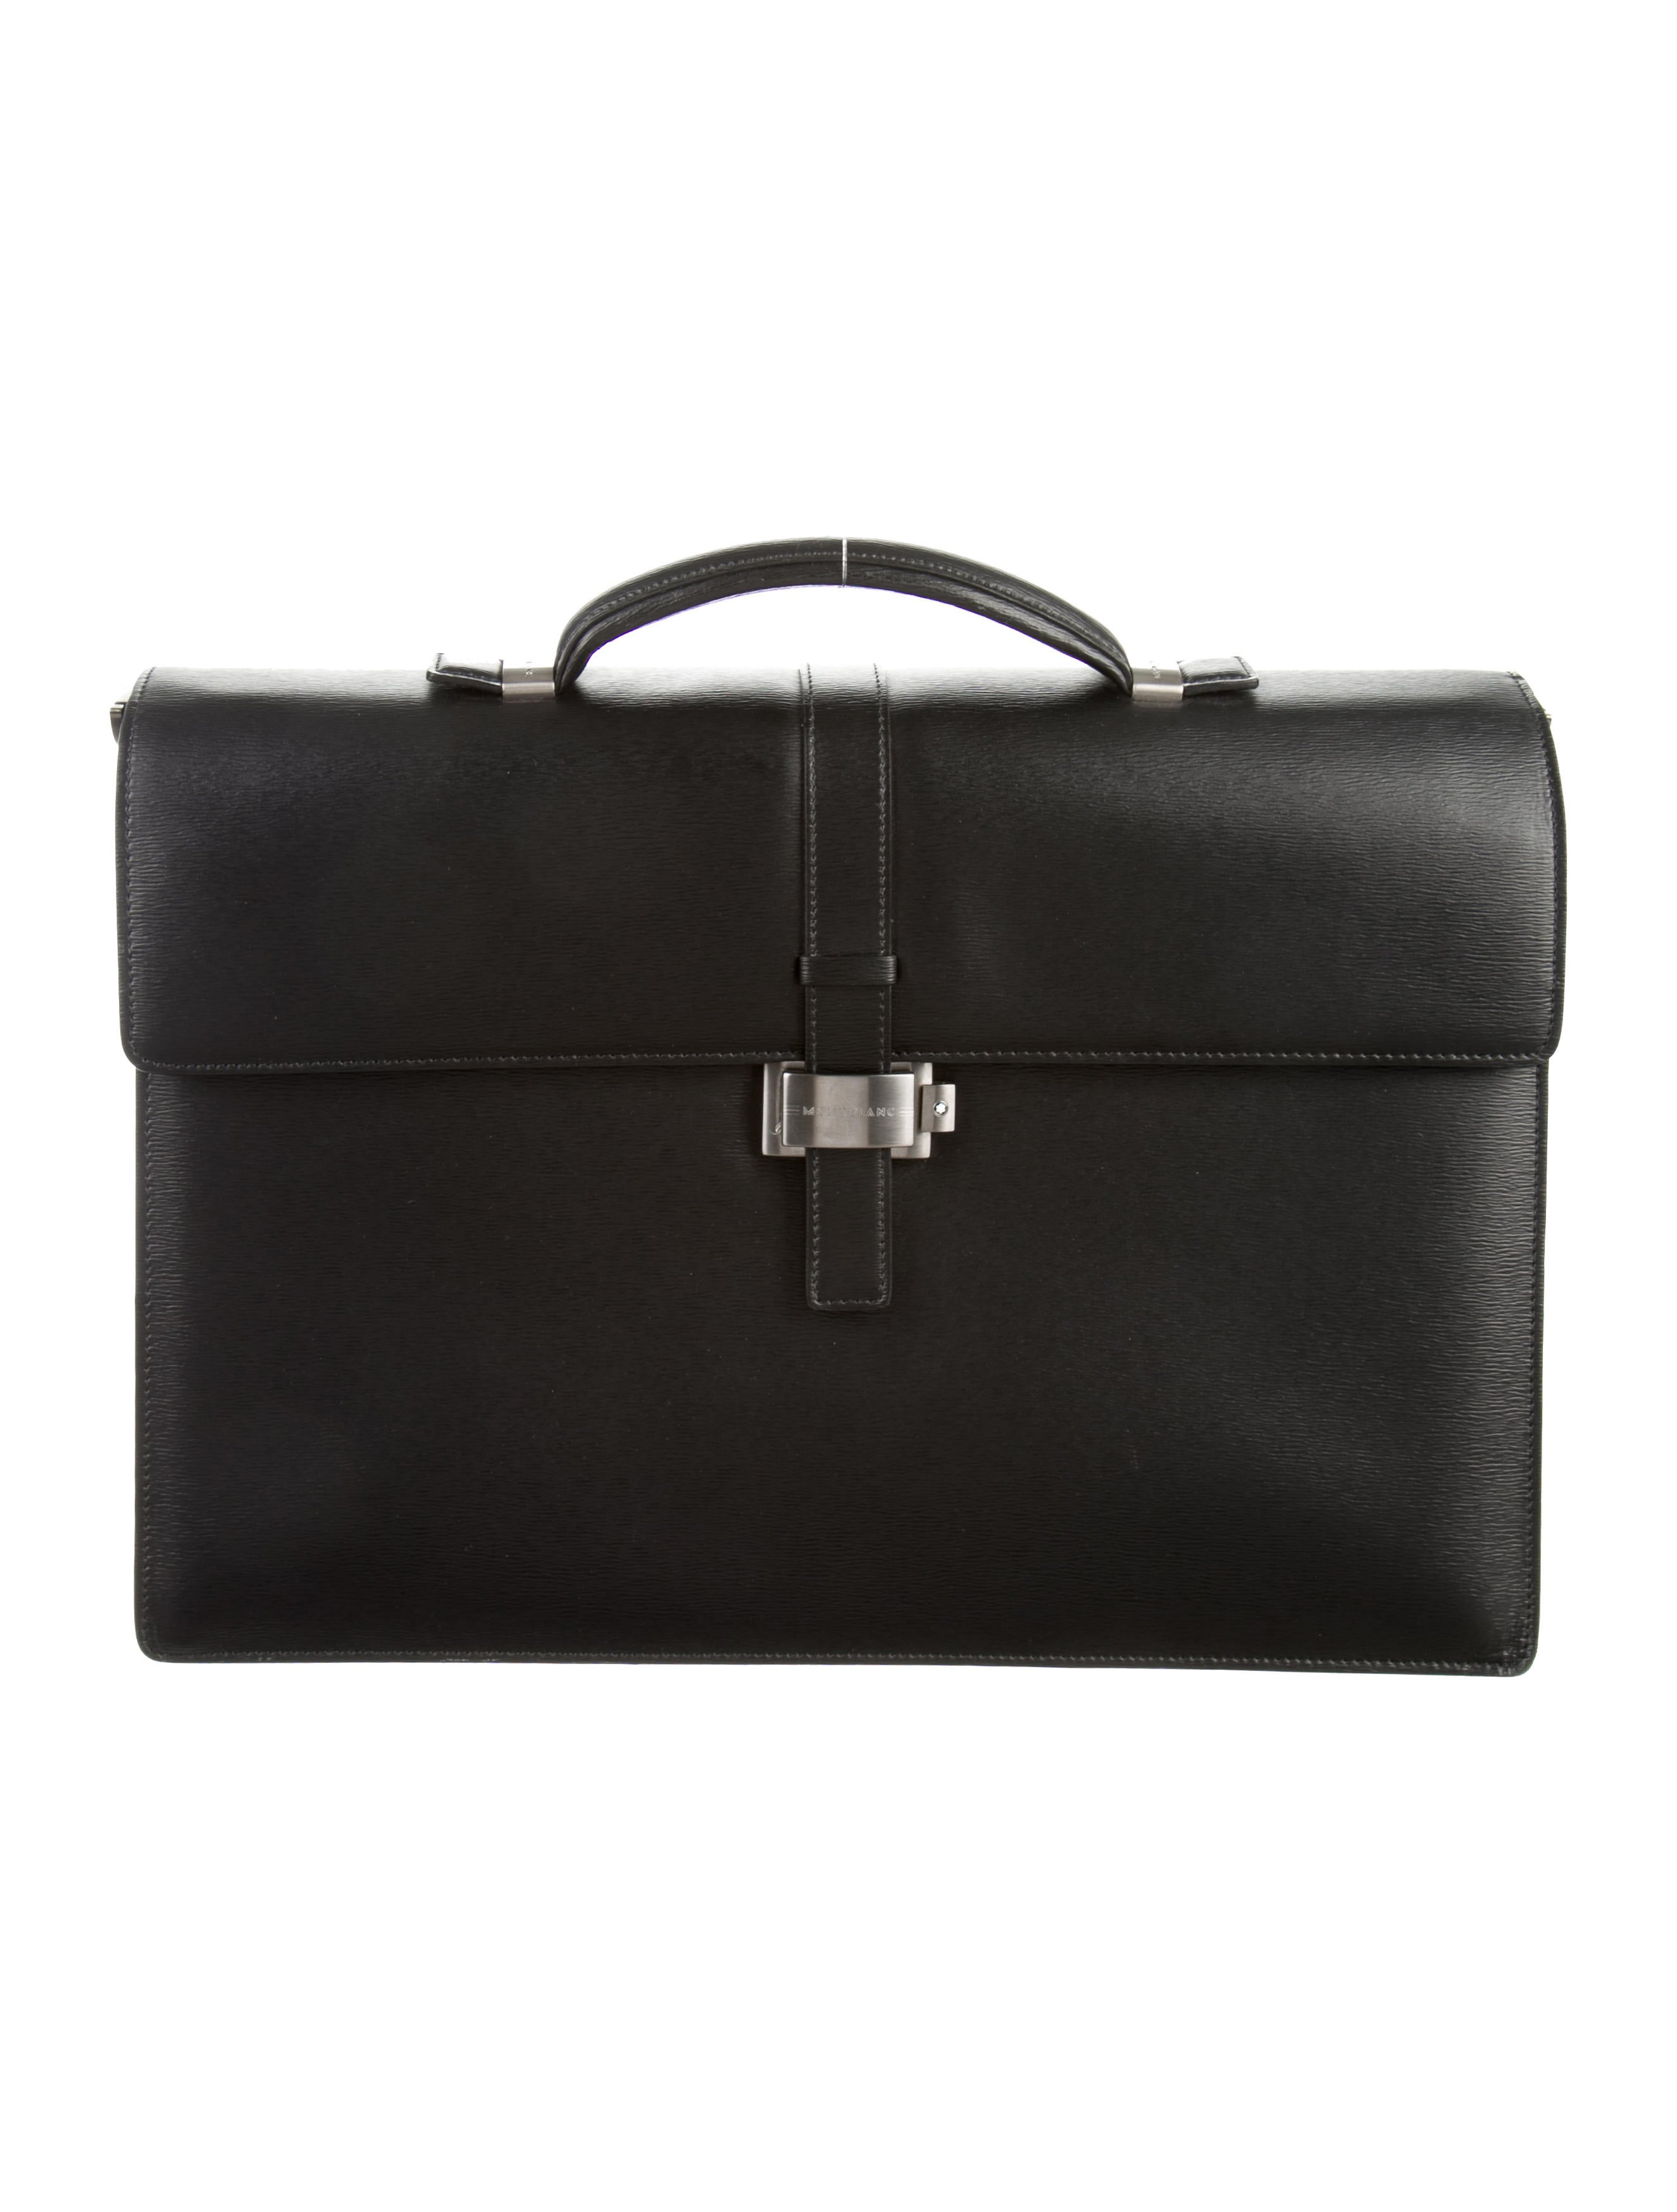 Montblanc Westside Double Gusset Briefcase Bags  : MBL208811enlarged from www.therealreal.com size 2650 x 3496 jpeg 354kB